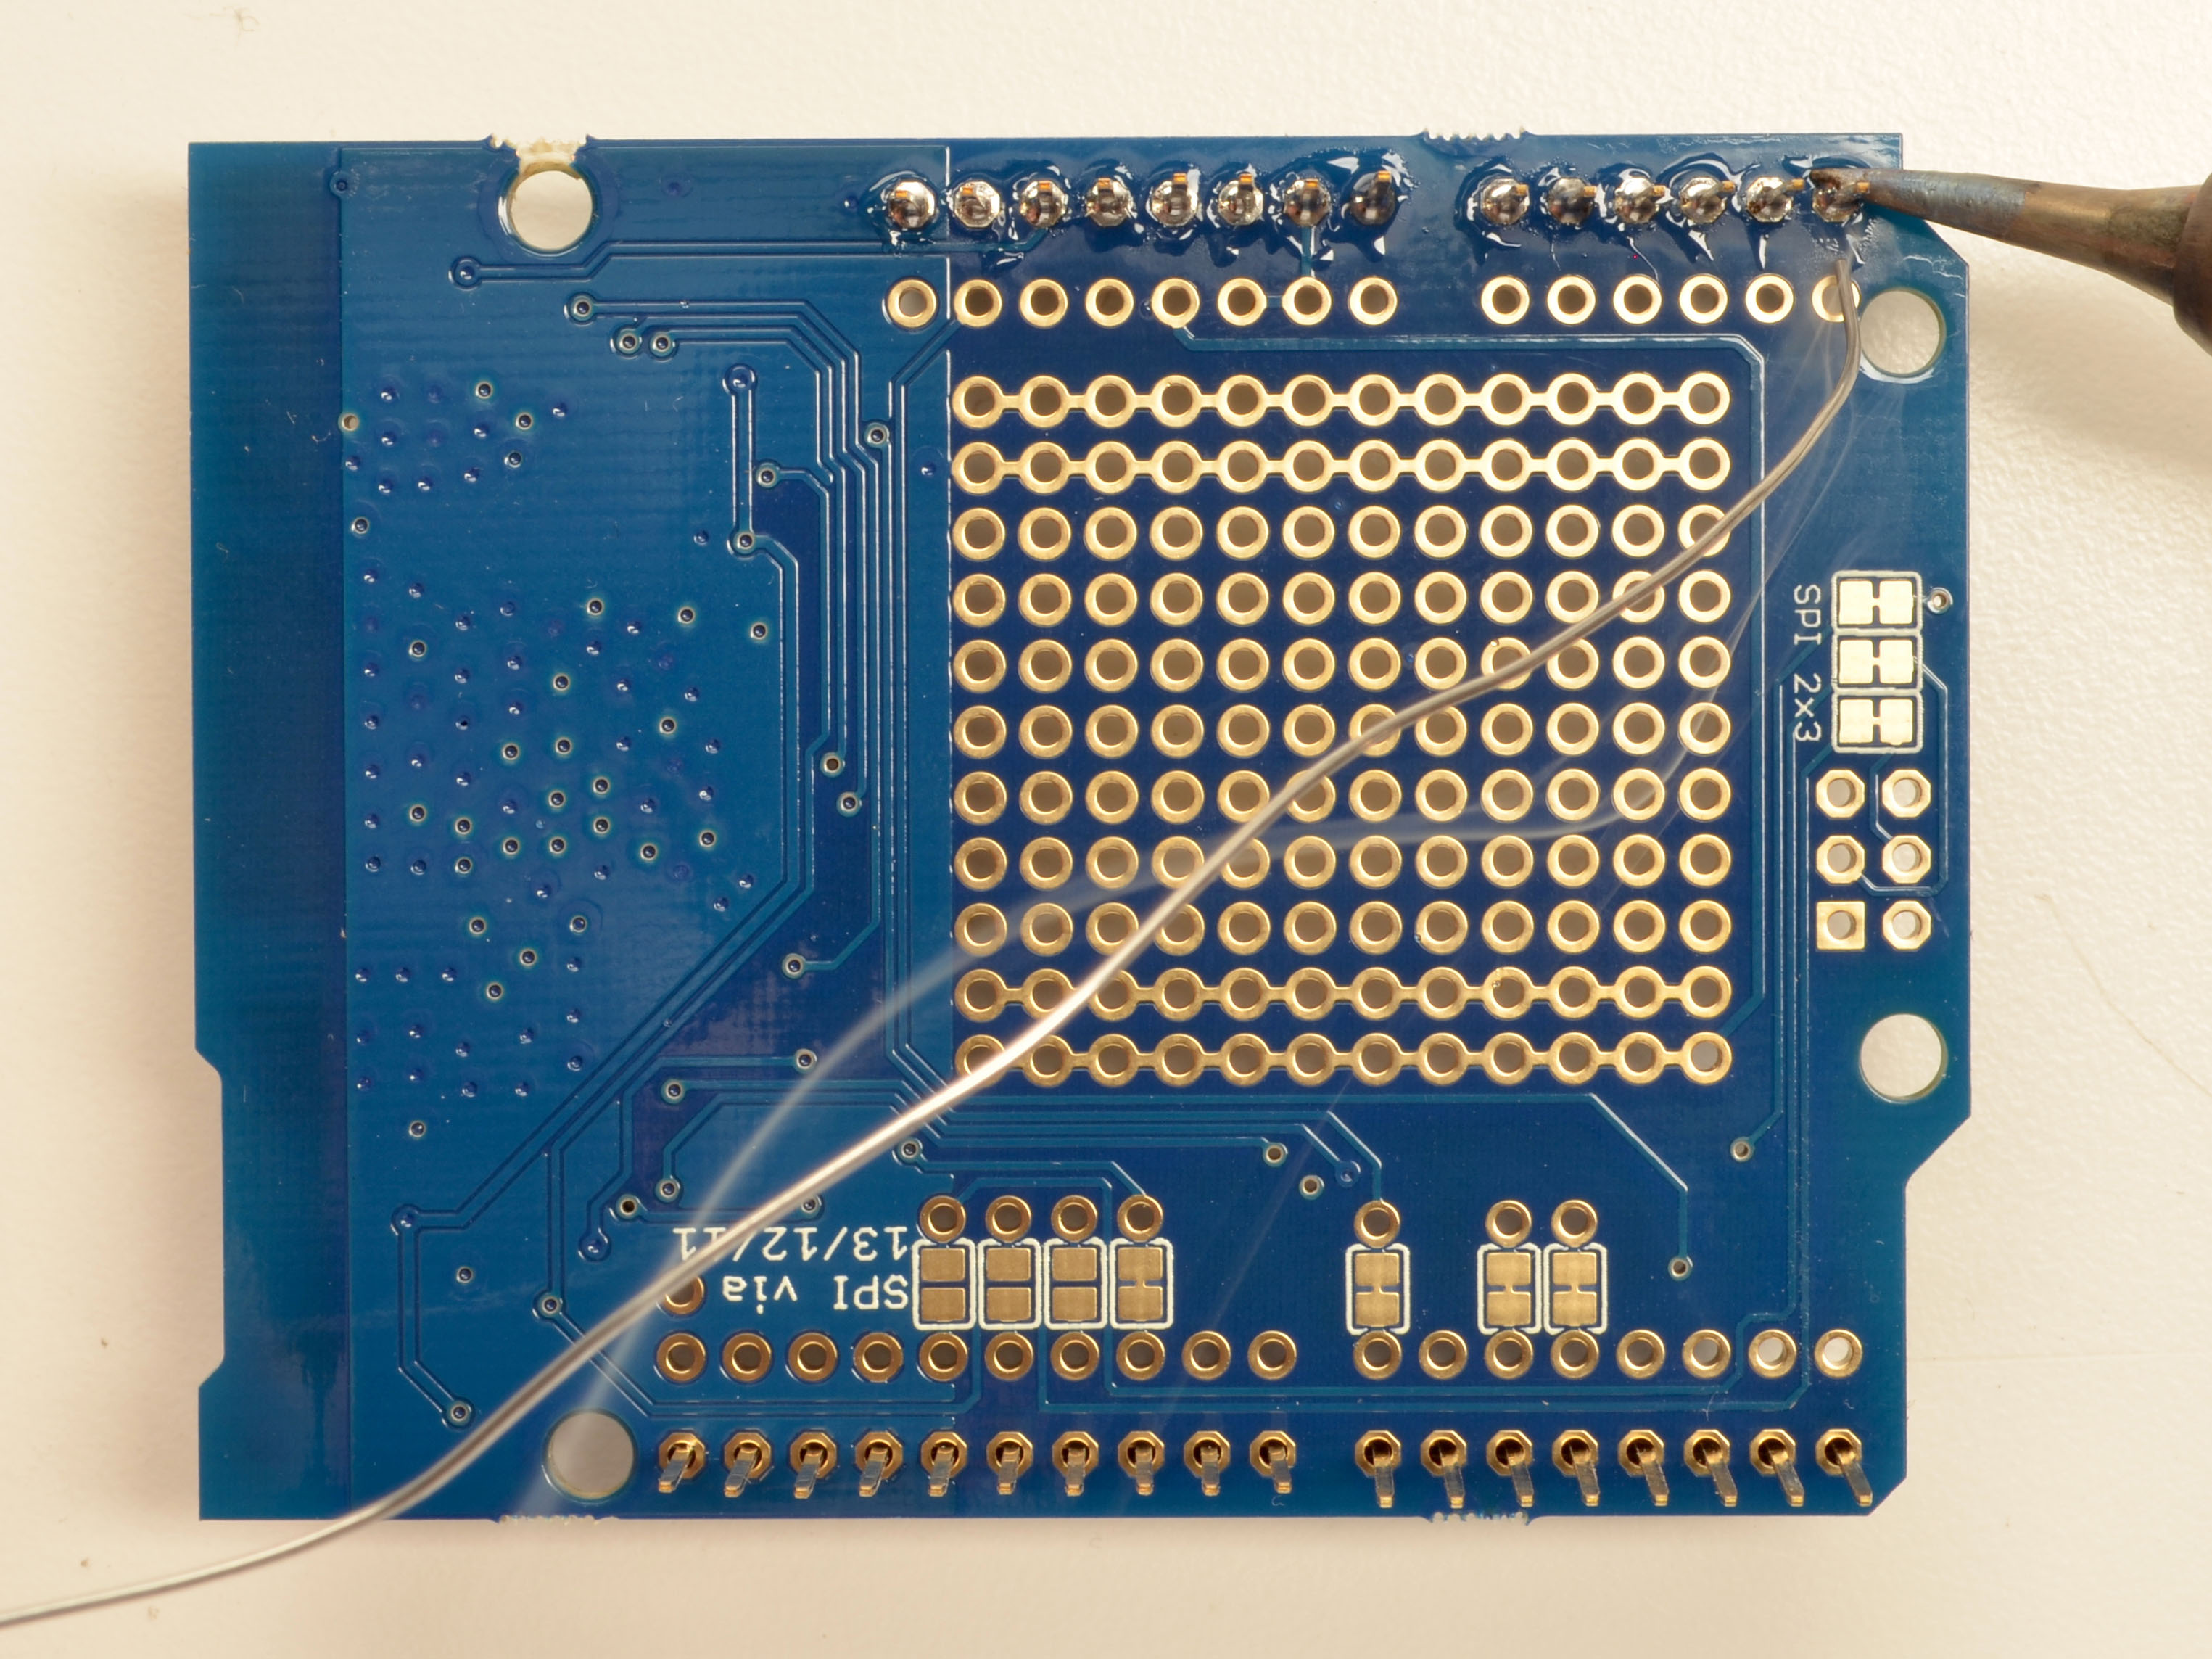 adafruit_products_DSC_3797.jpg